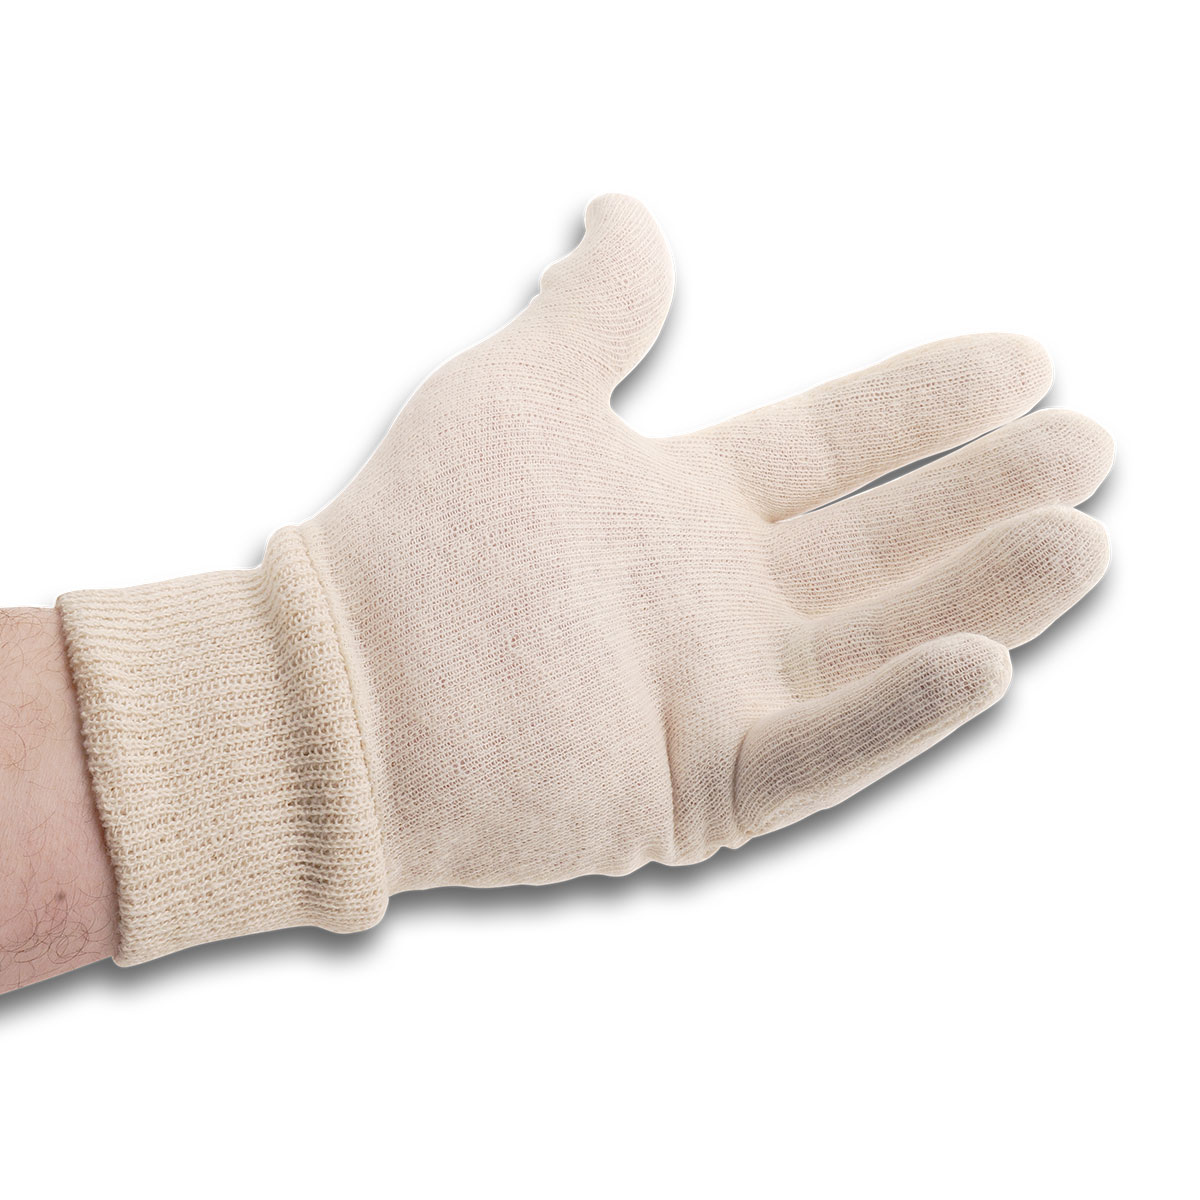 cleanroom whitetricot gloves